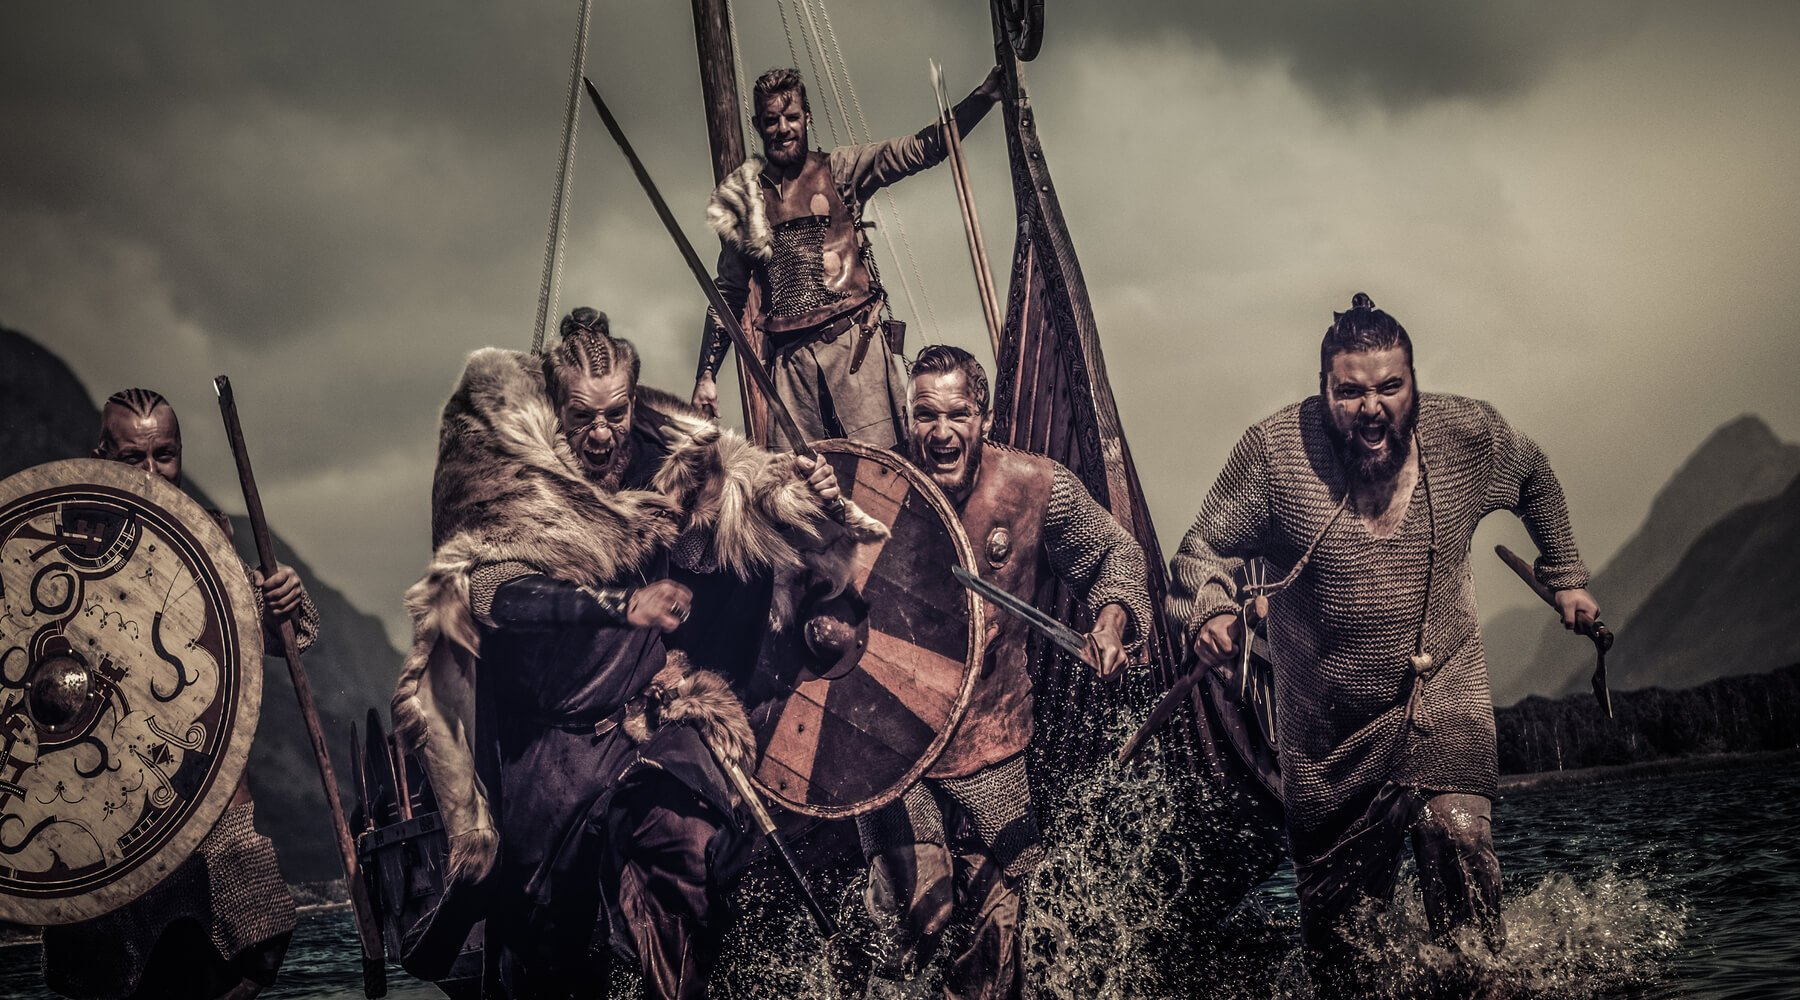 Viking war party carrying various weapons and shields